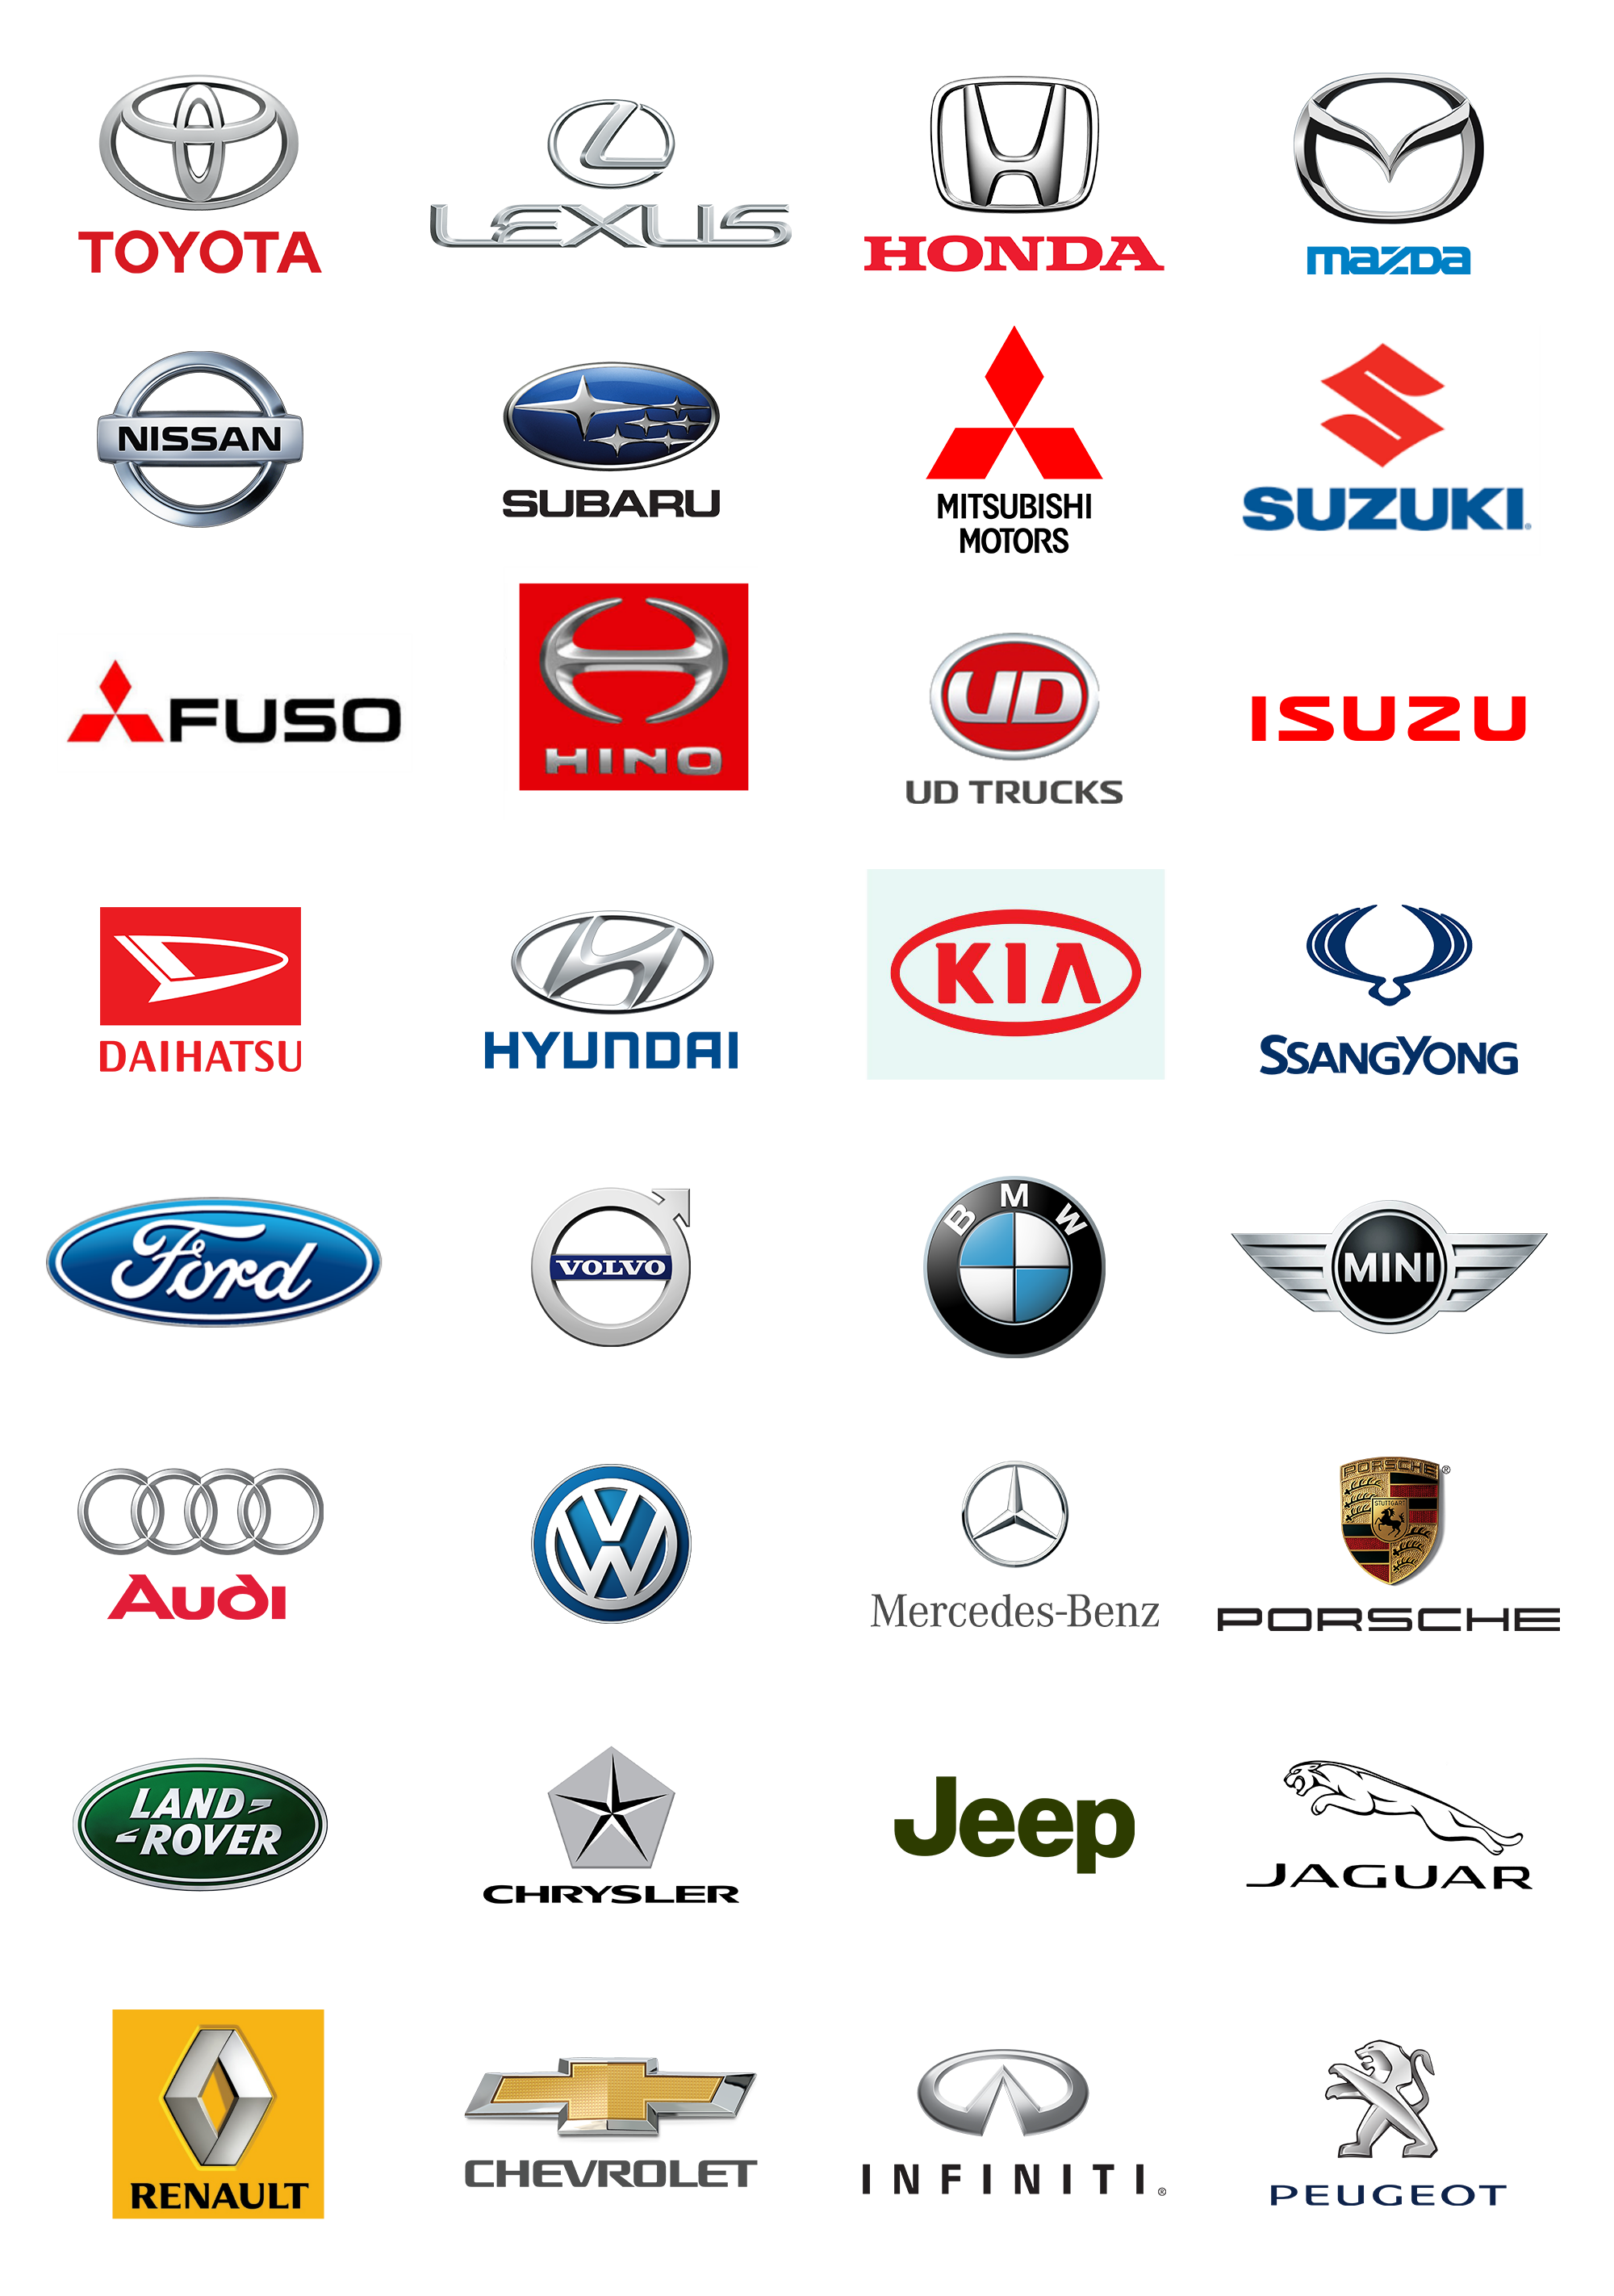 Japan Auto Parts Solutions Co Ltd | Specialize in Genuine Auto Parts